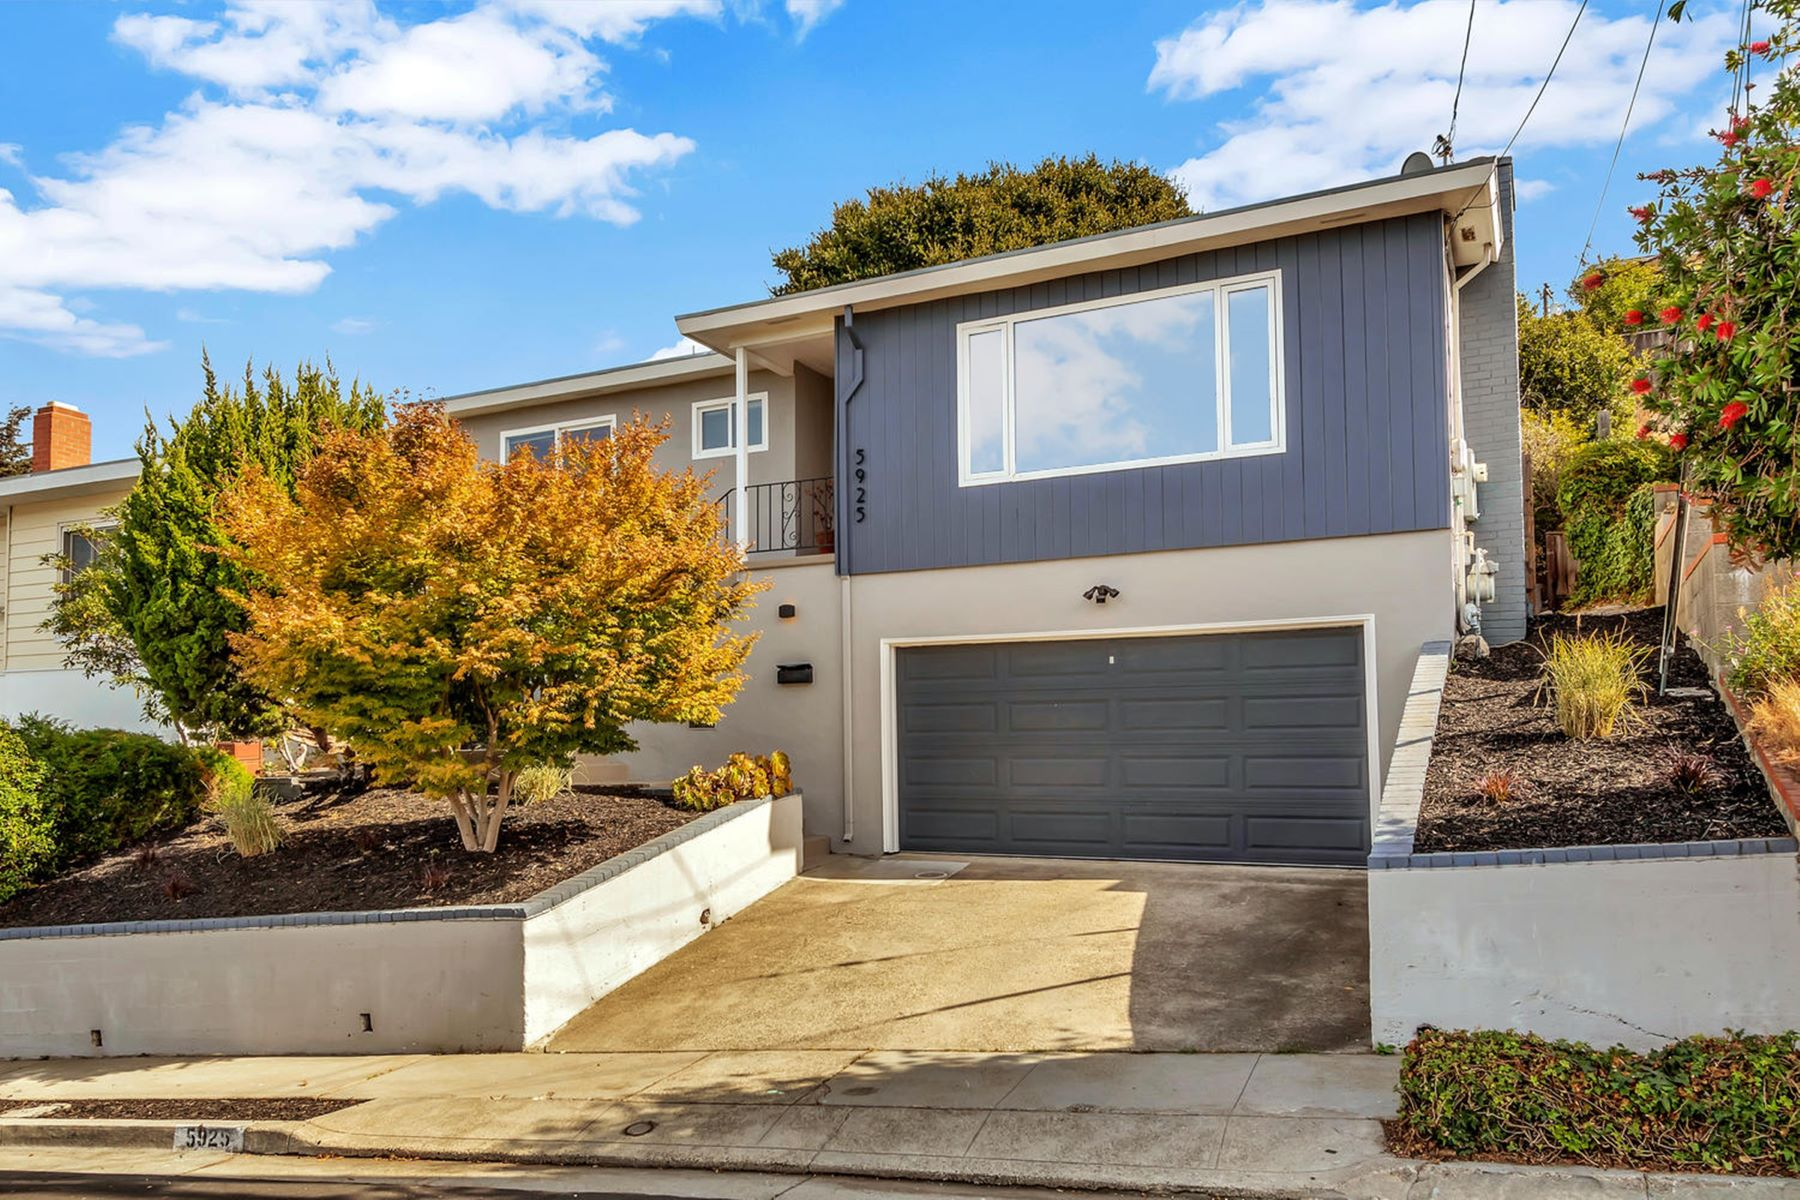 Single Family Homes for Sale at Mira Vista Mid Century with Views 5925 Jordan Avenue El Cerrito, California 94530 United States